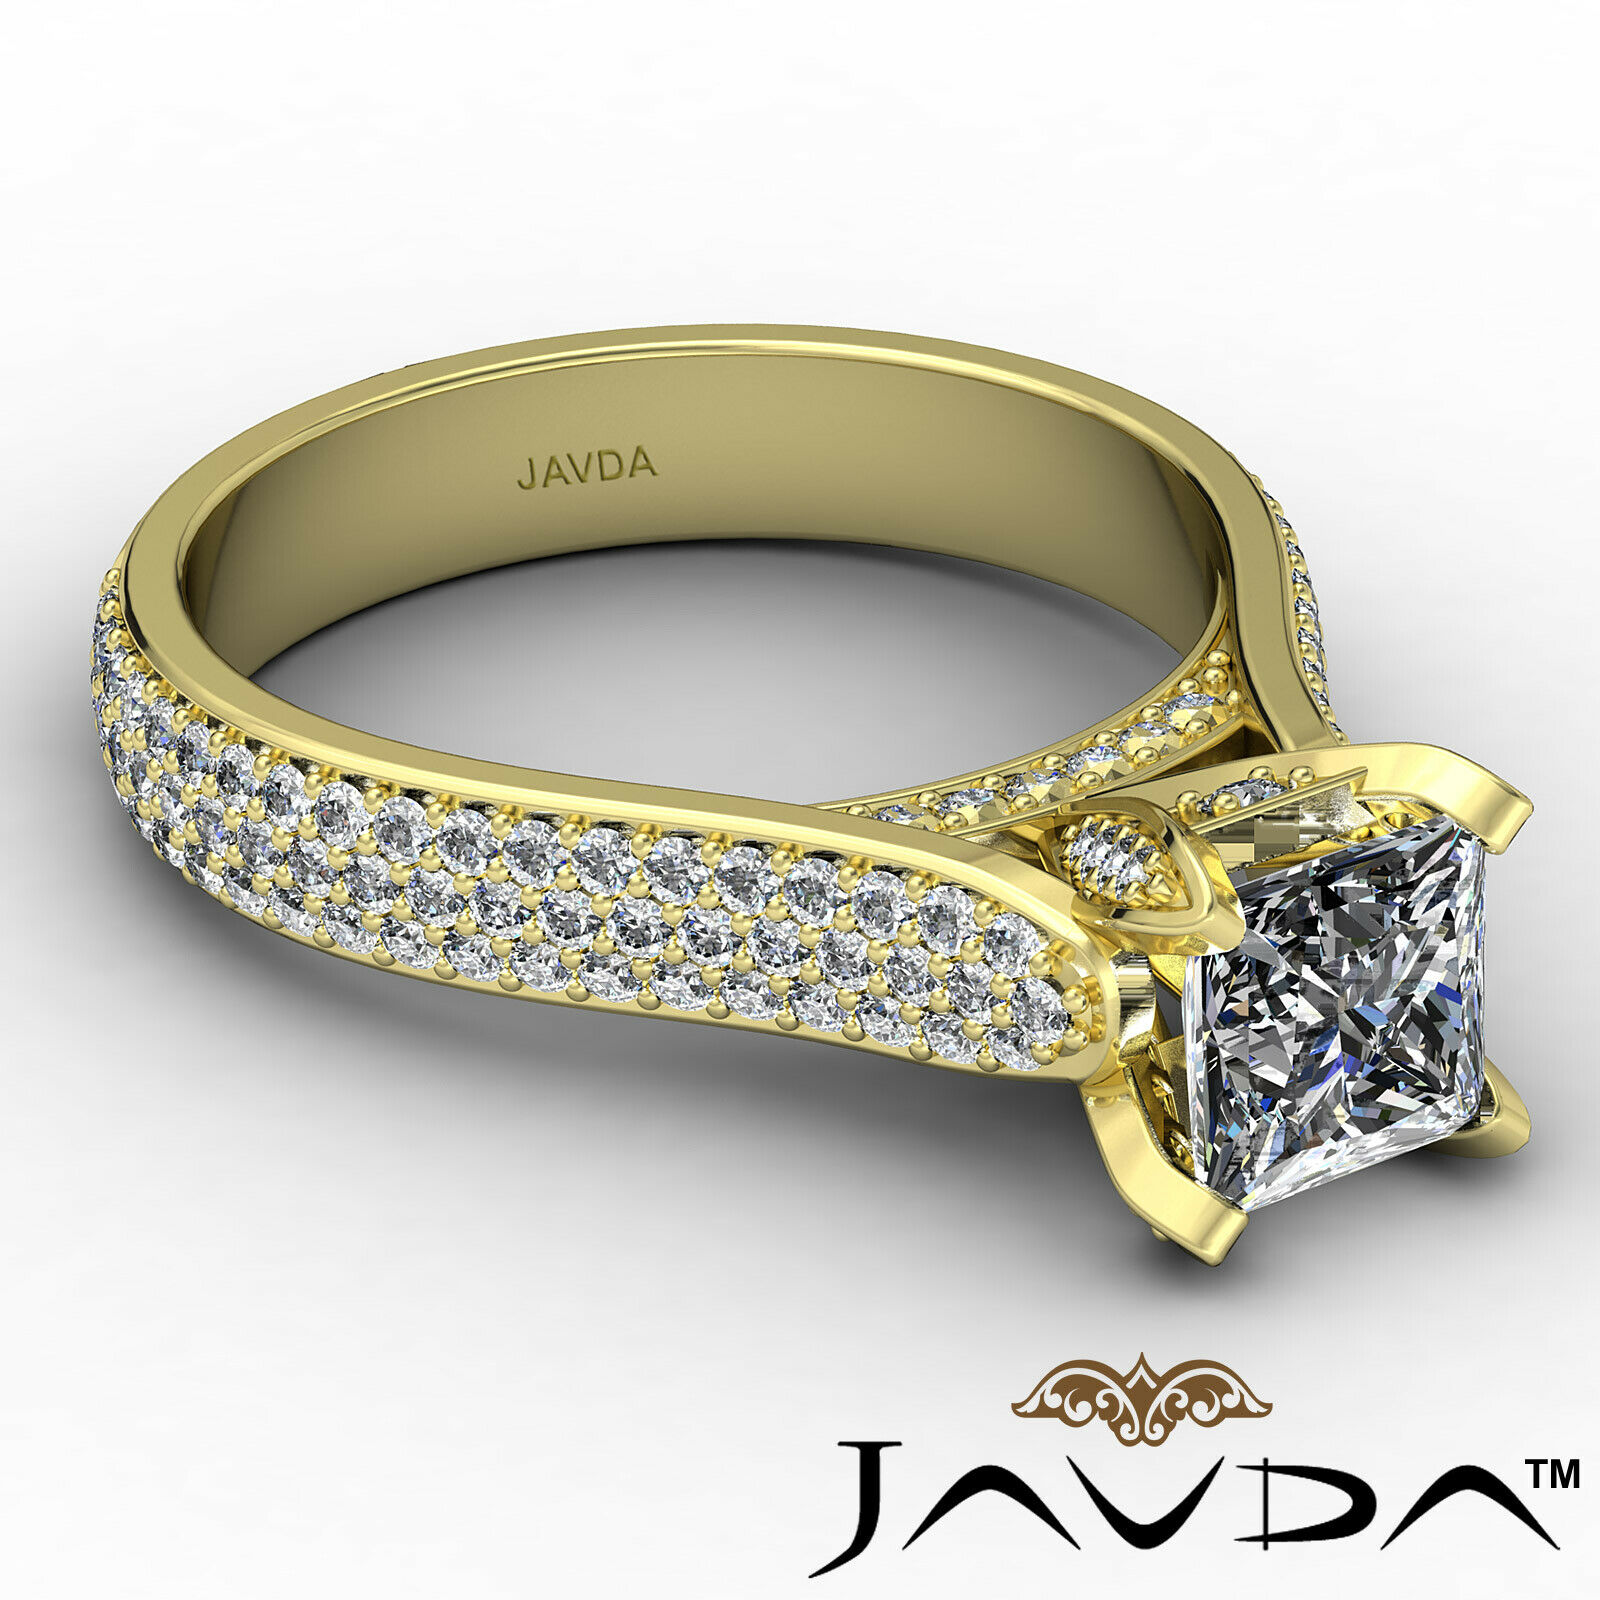 Princess Diamond Engagement Micro Pave Ring GIA E Color & SI1 clarity 1.95 ctw 7